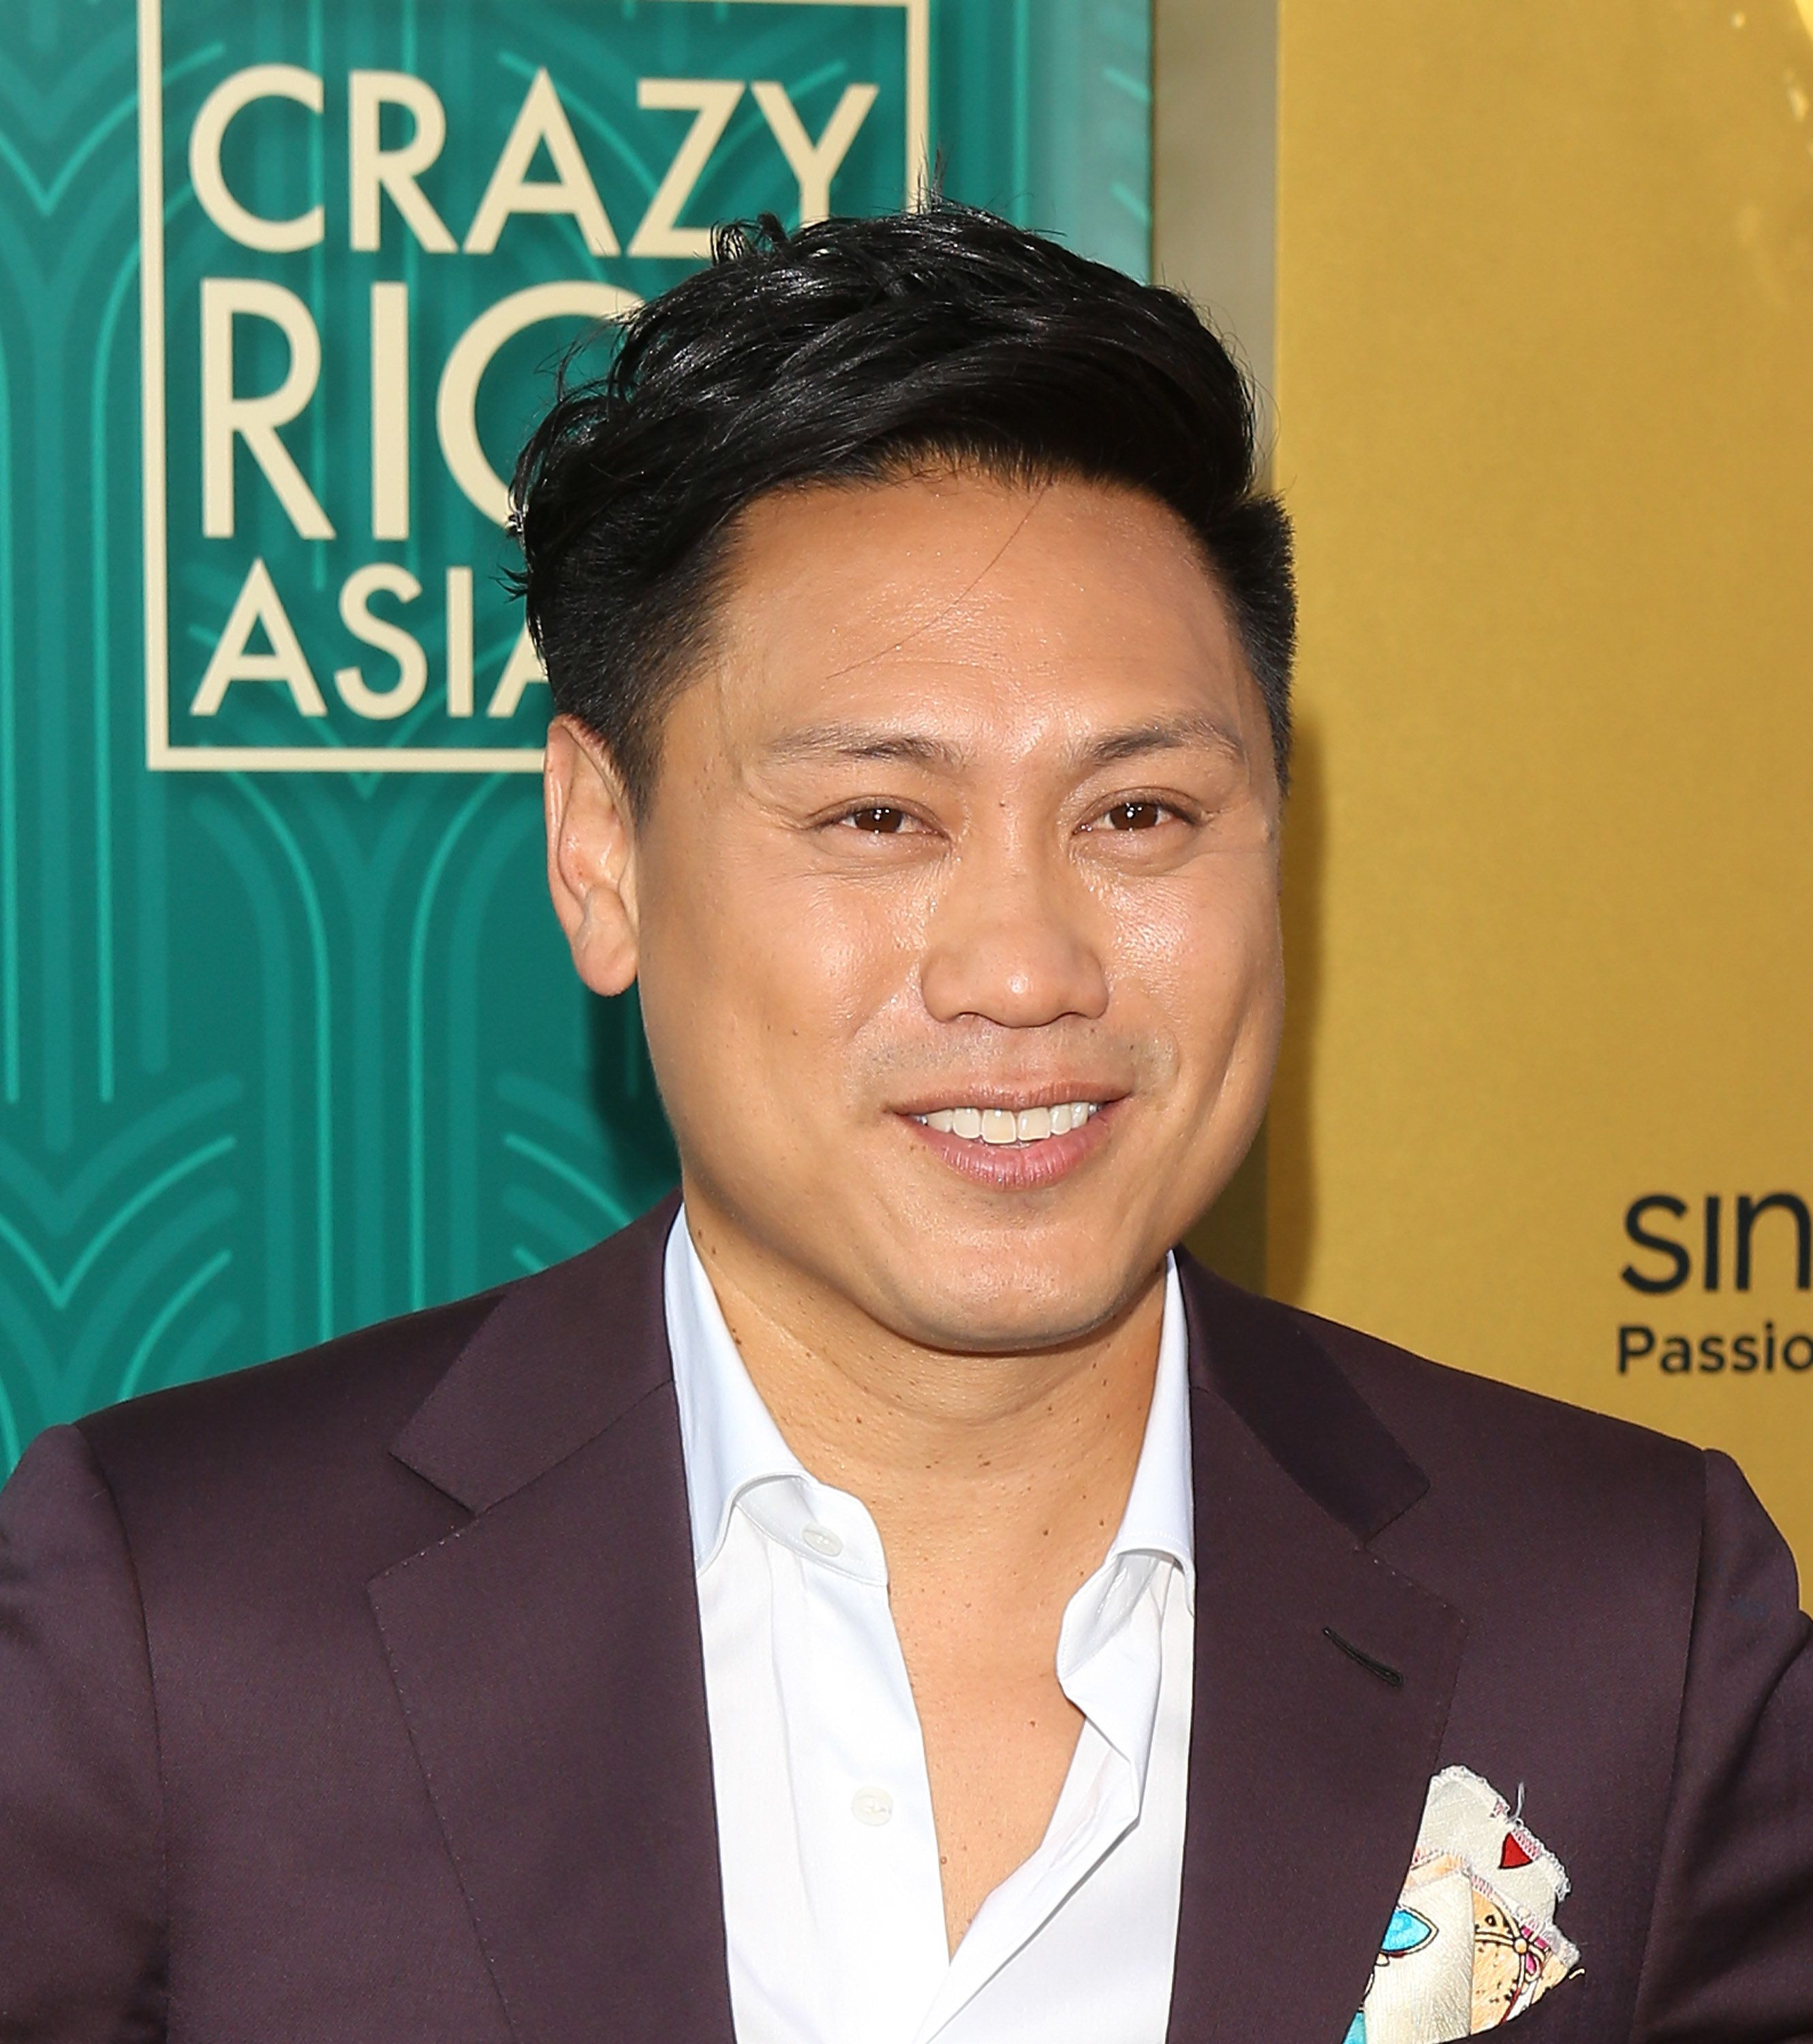 'Crazy Rich Asians' Director Shares Why It Took Him So Long To Explore His Cultural Identity